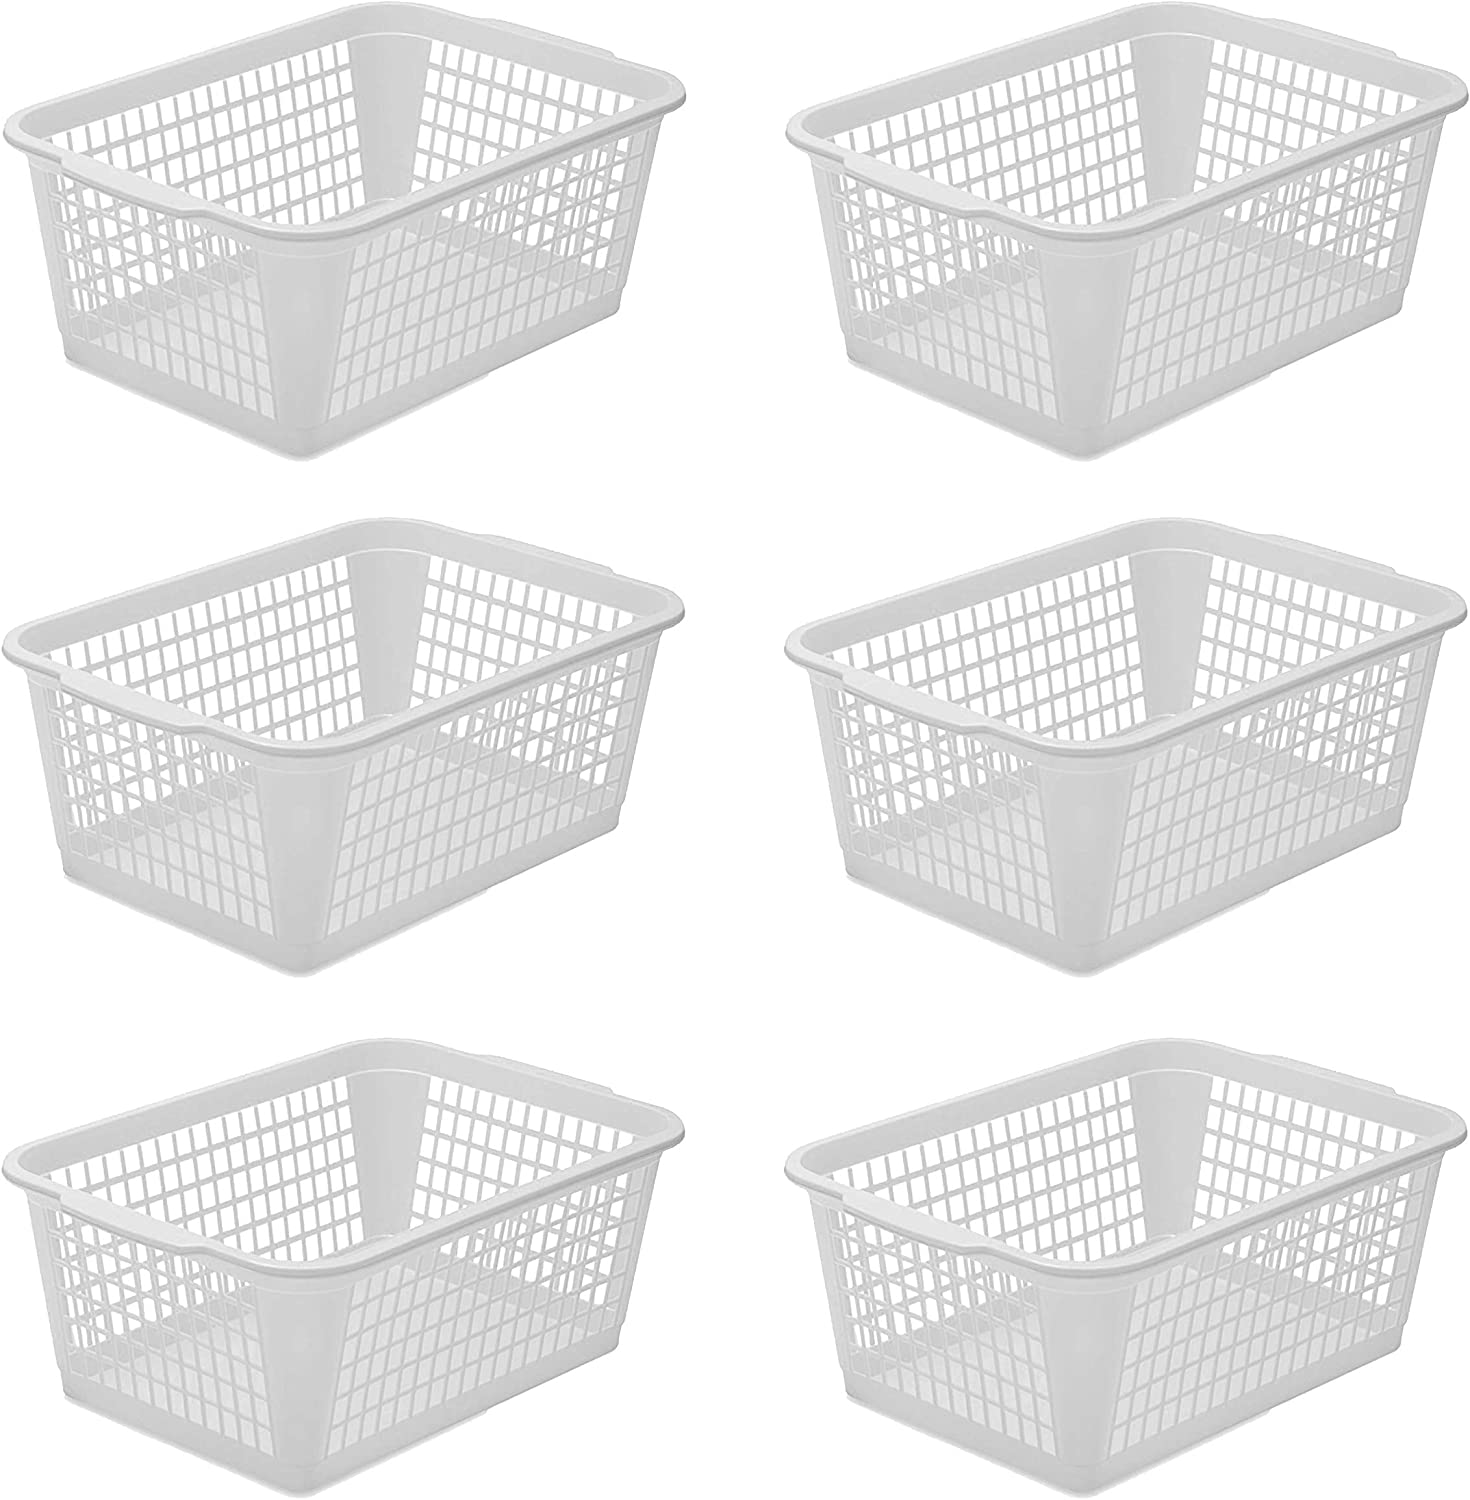 YBM Home 6-Pack Plastic Storage Basket for Office Drawer, Desktop and Classroom - Multipurpose Perforated Bin Tray Organizer for Shelves, Kitchen Pantry, Kids Room, and More 32-1184 White